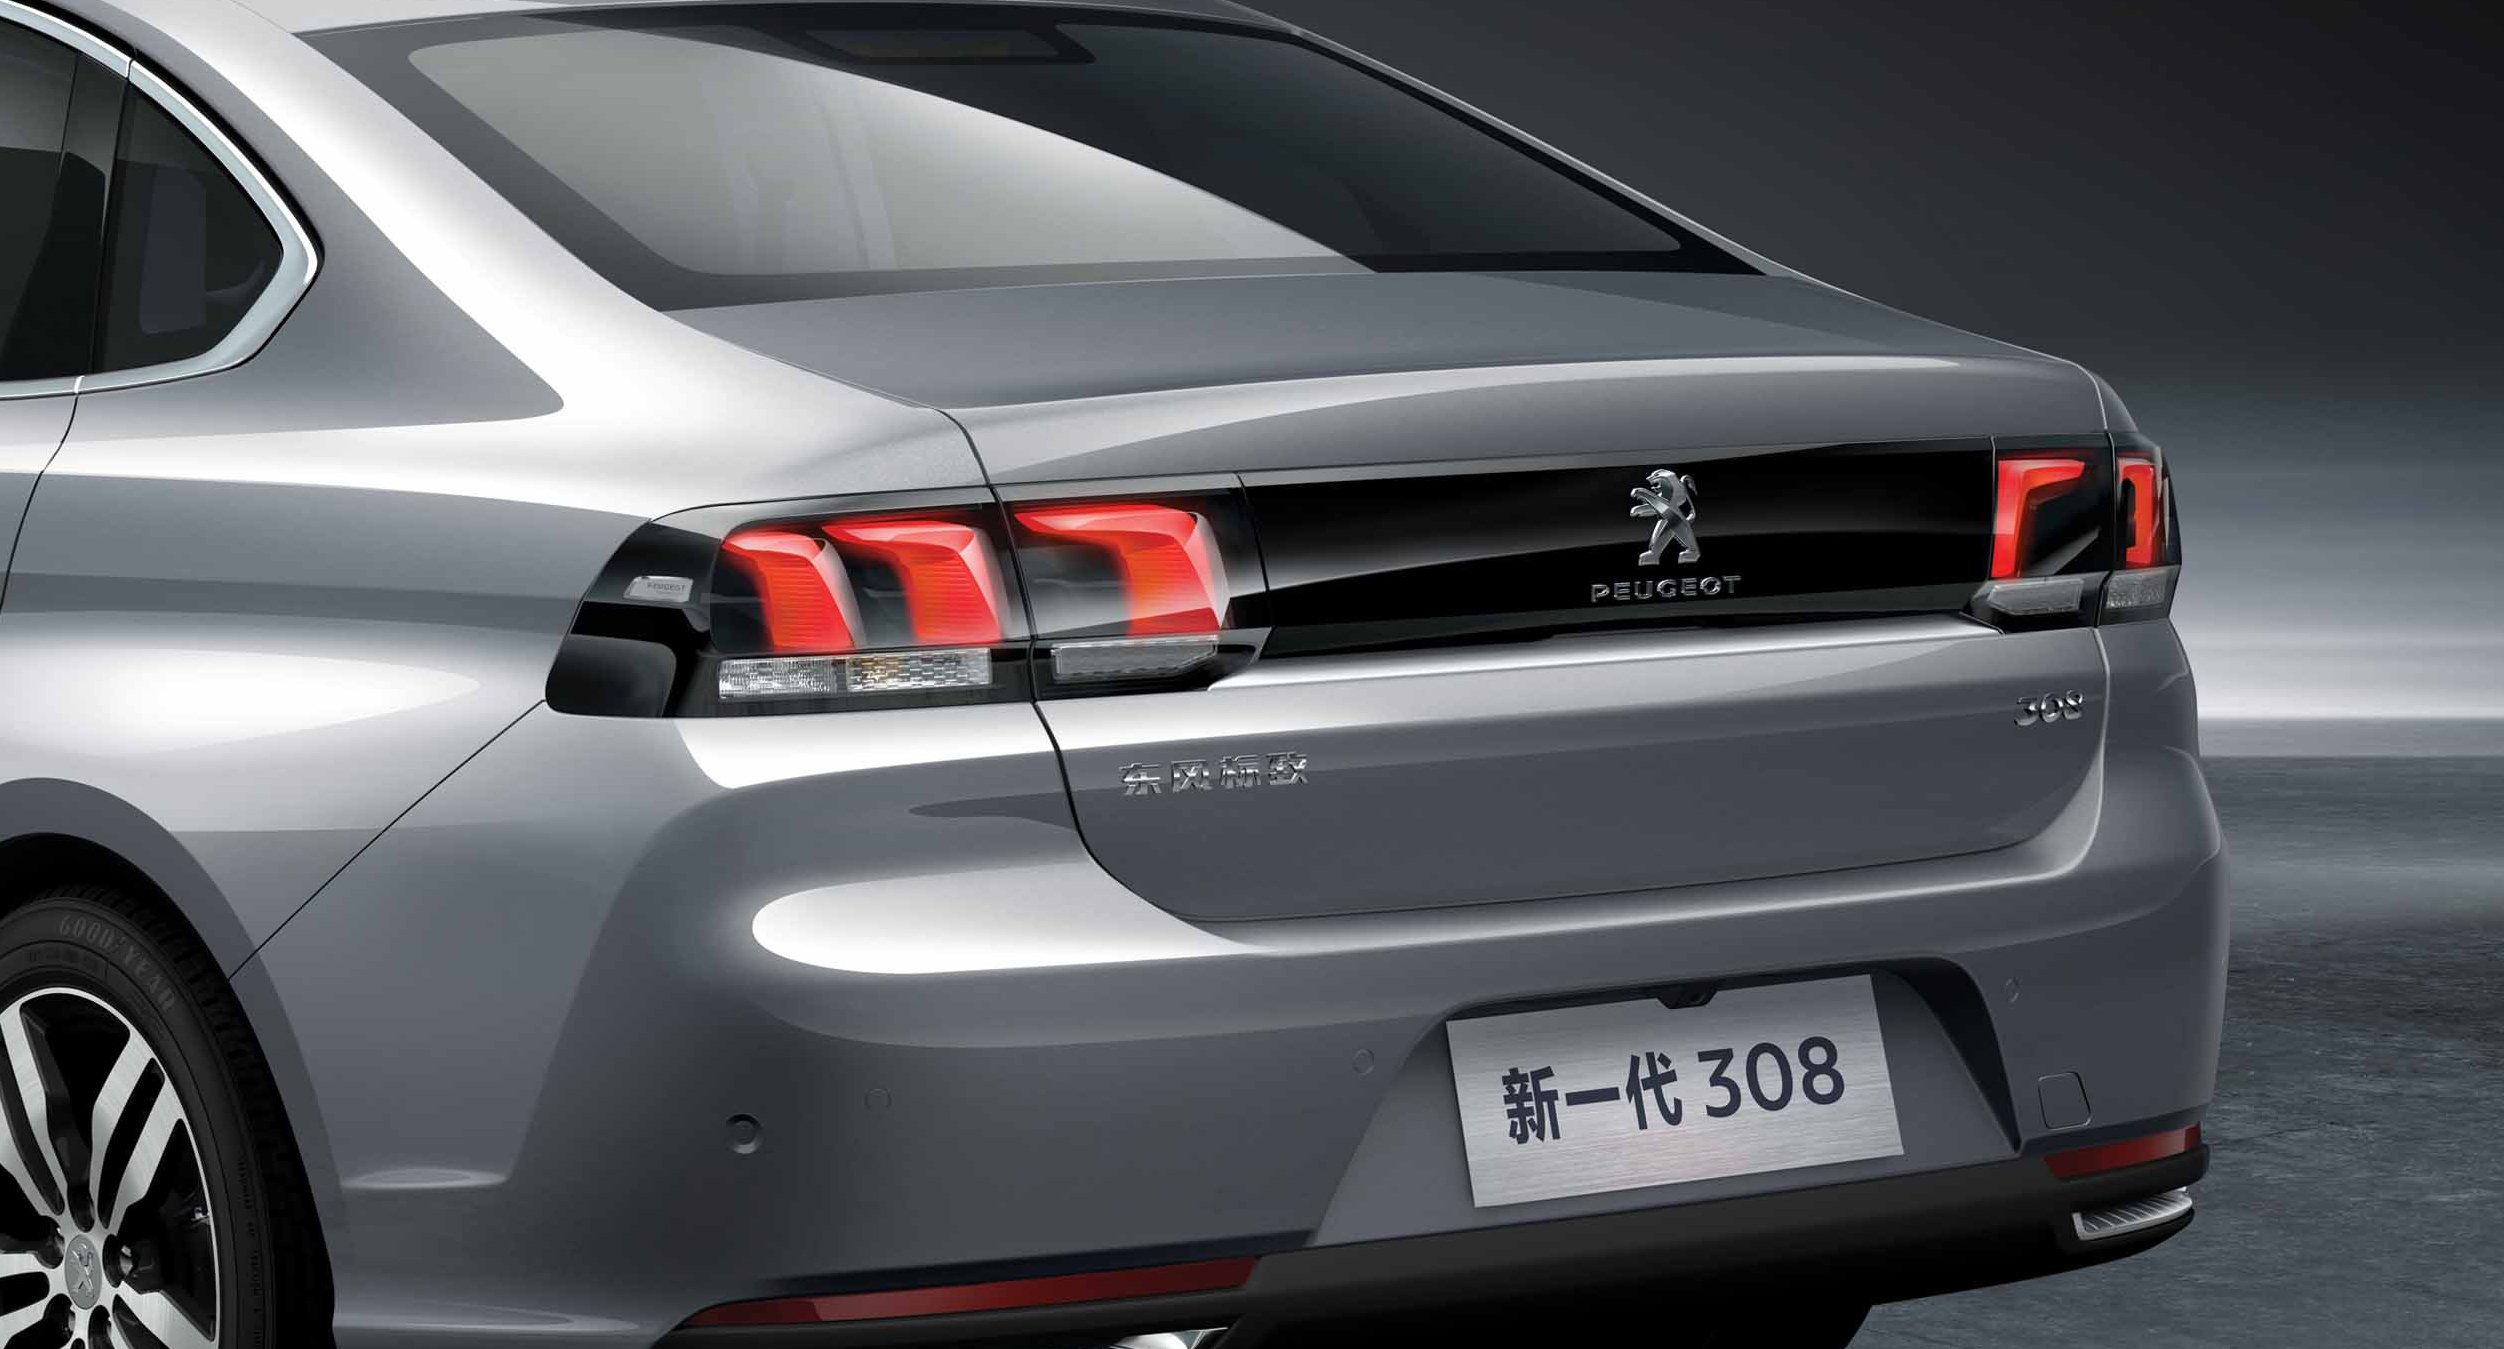 peugeot 308 sedan 3008 facelift revealed for chinese. Black Bedroom Furniture Sets. Home Design Ideas